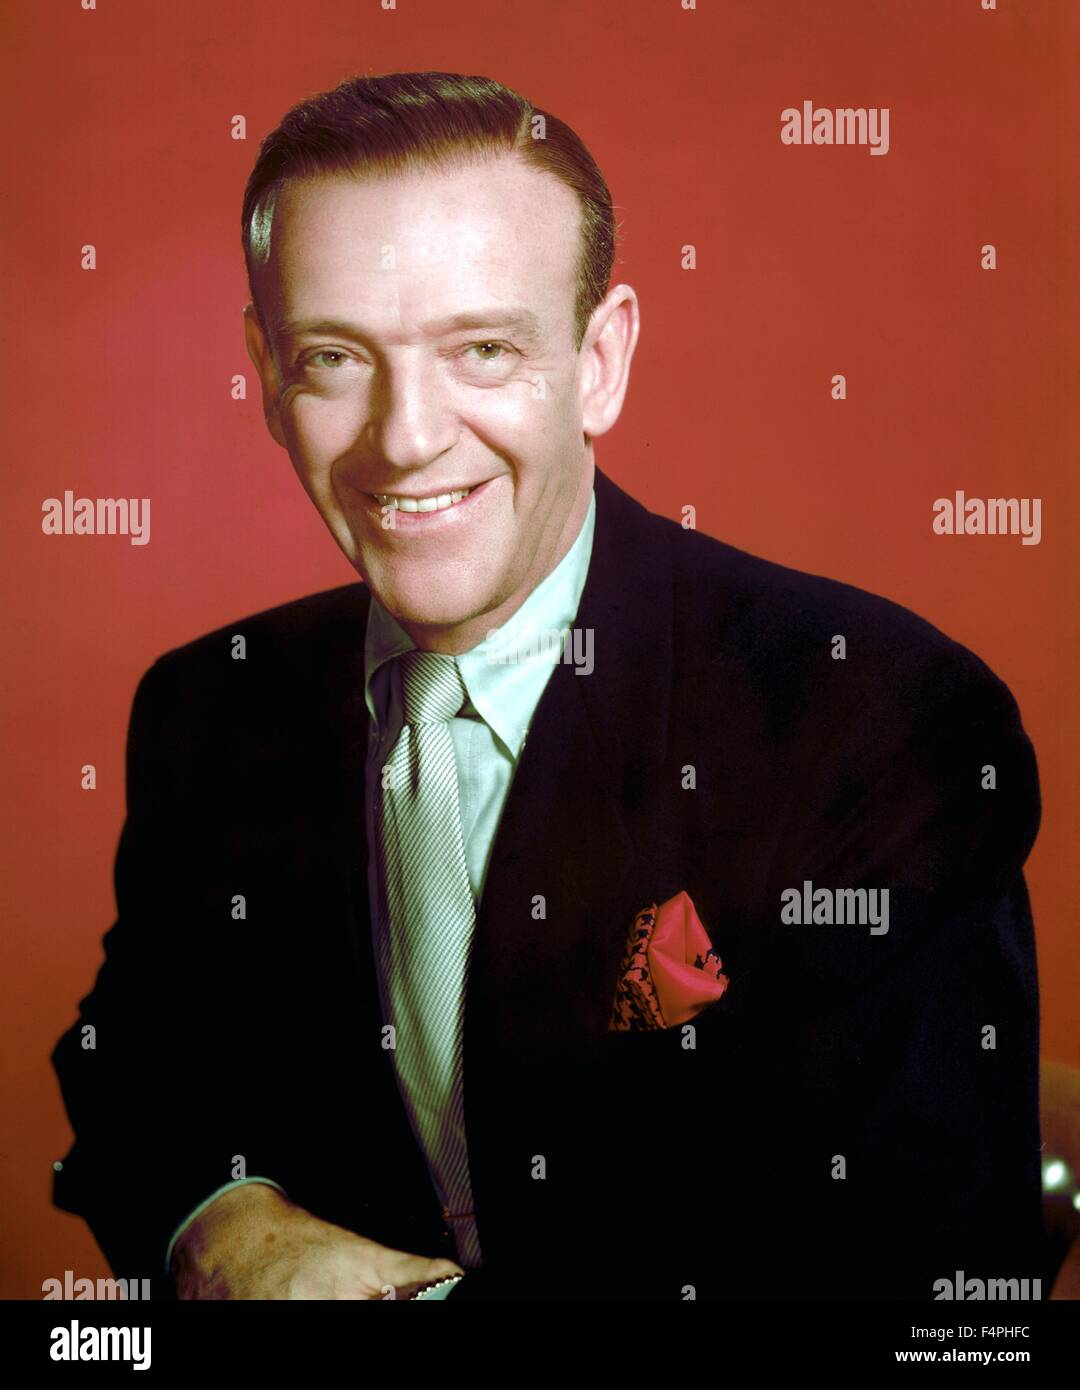 Fred Astaire in the 50's [Metro-Goldwyn-Mayer Pictures] - Stock Image